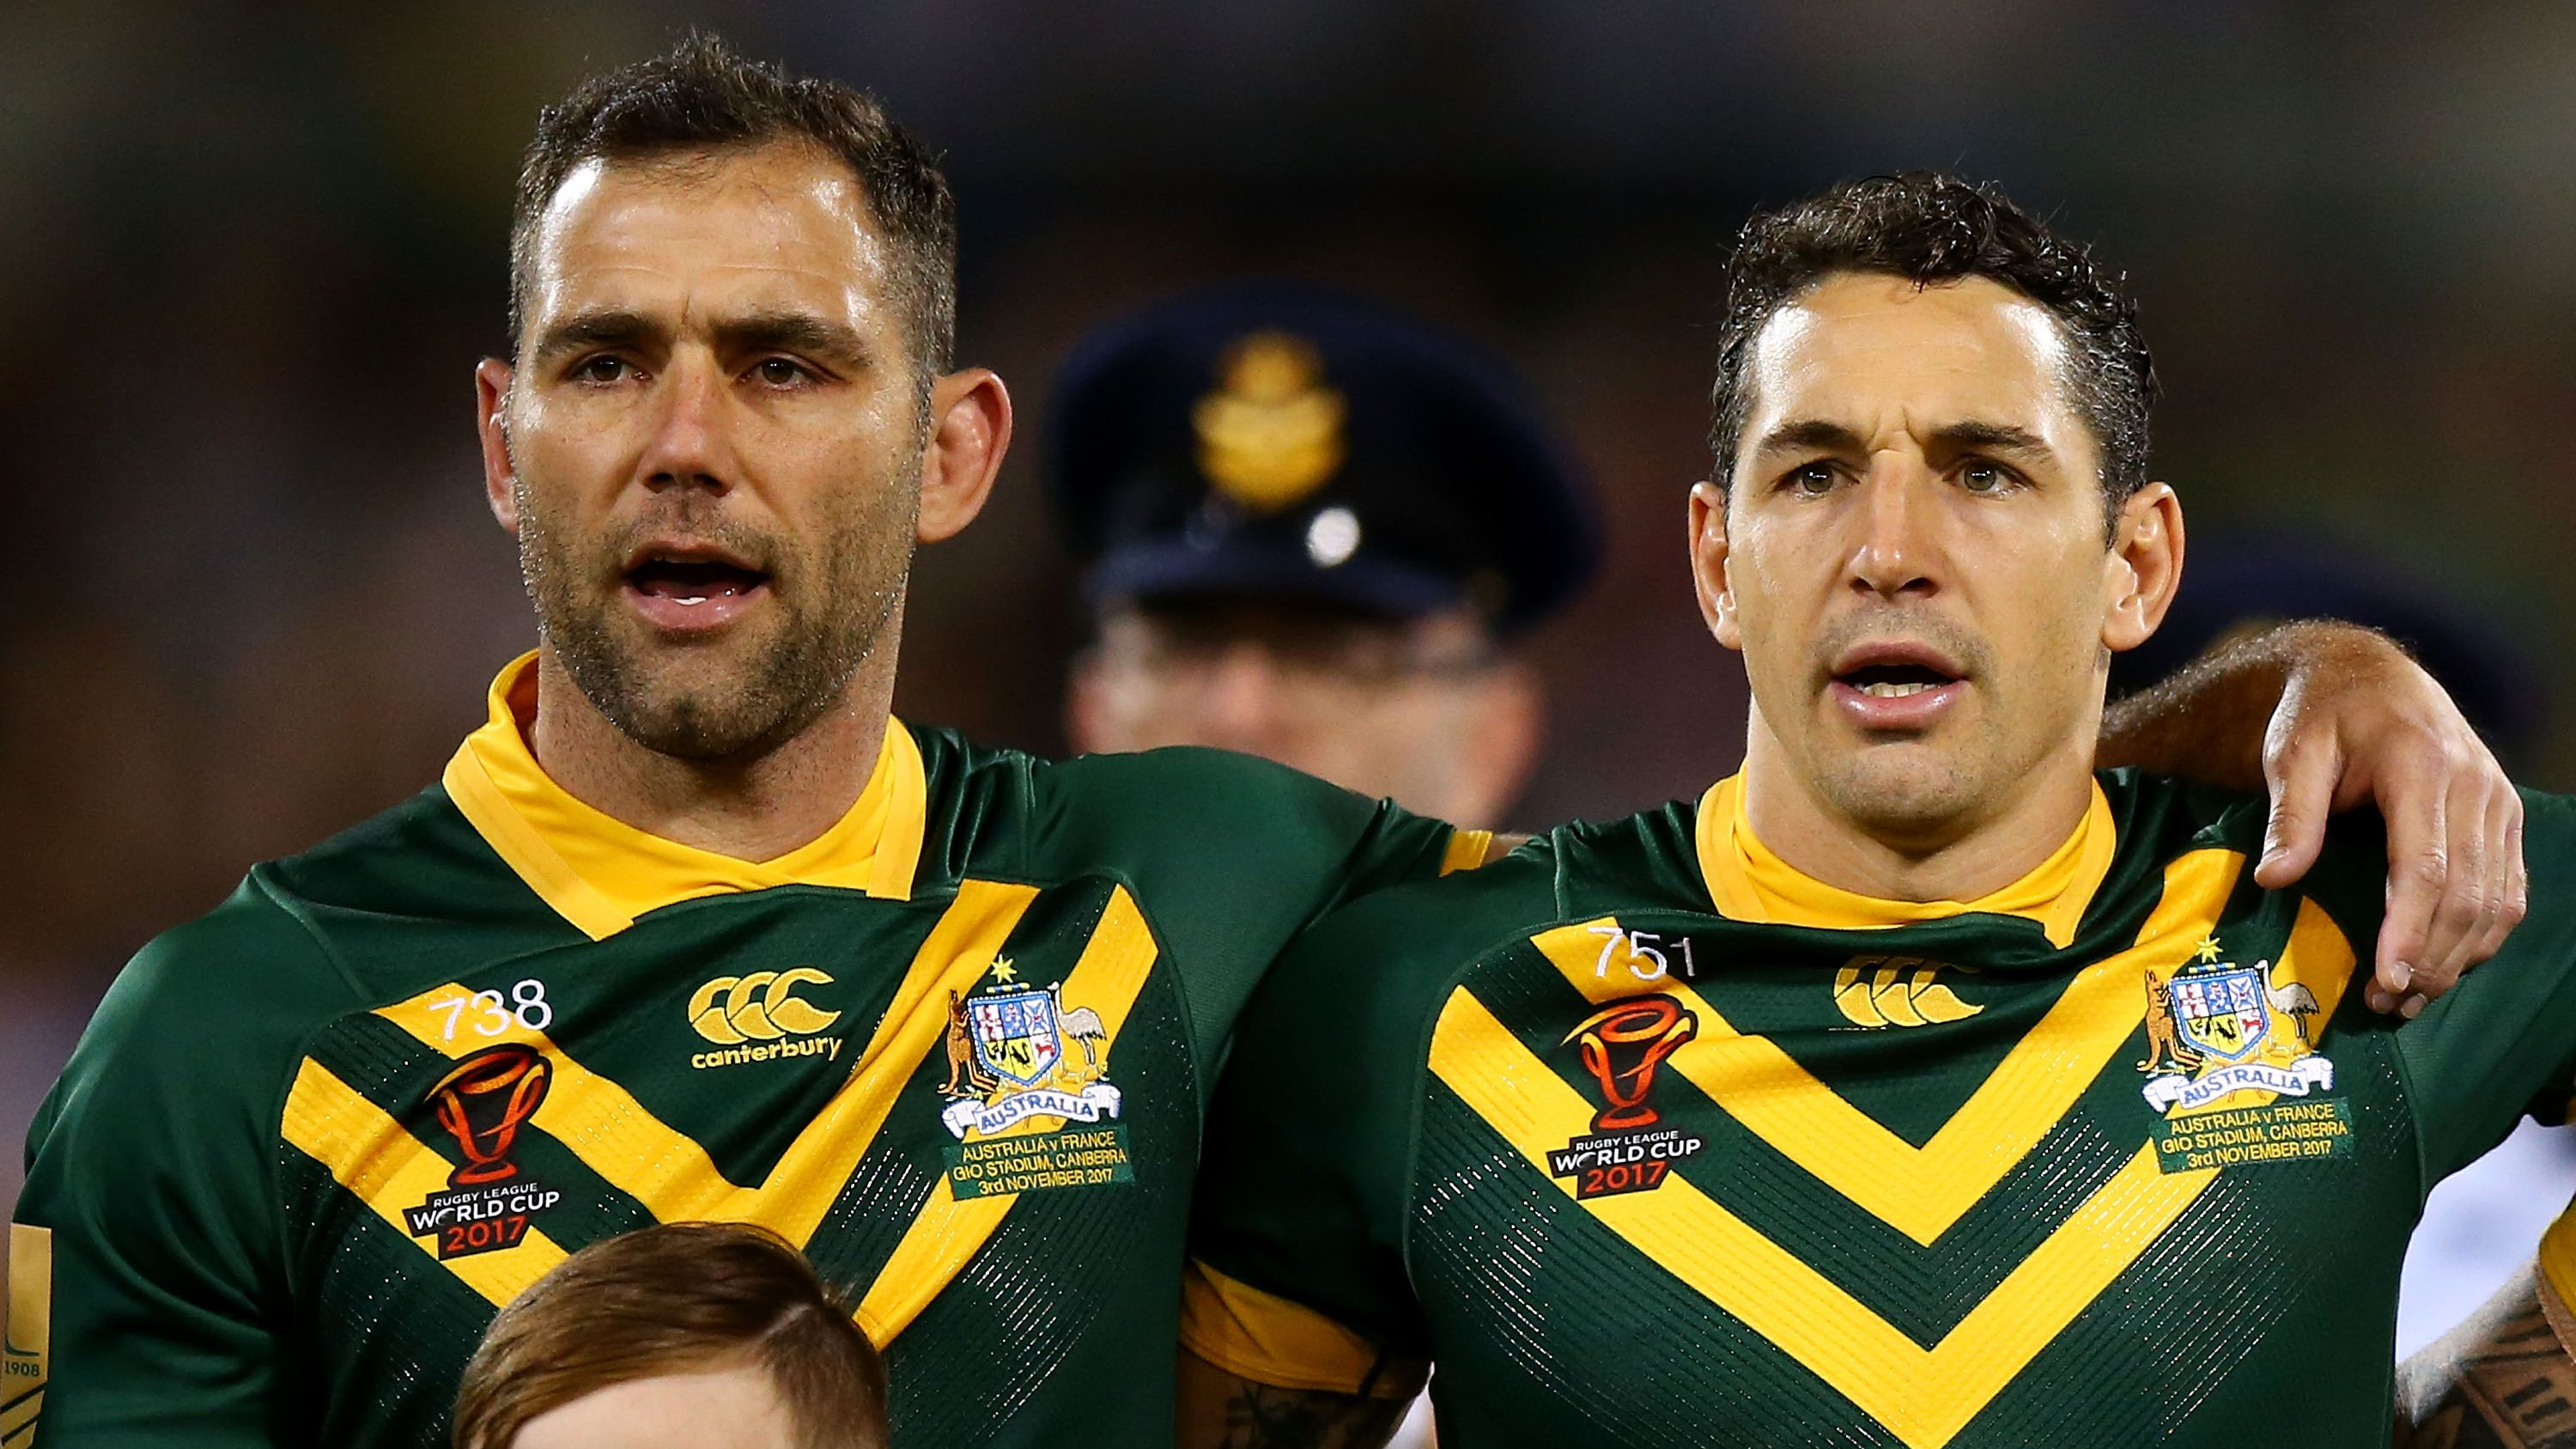 Cameron Smith alongside Kangaroos teammate Billy Slater at the 2017 Rugby League World Cup.